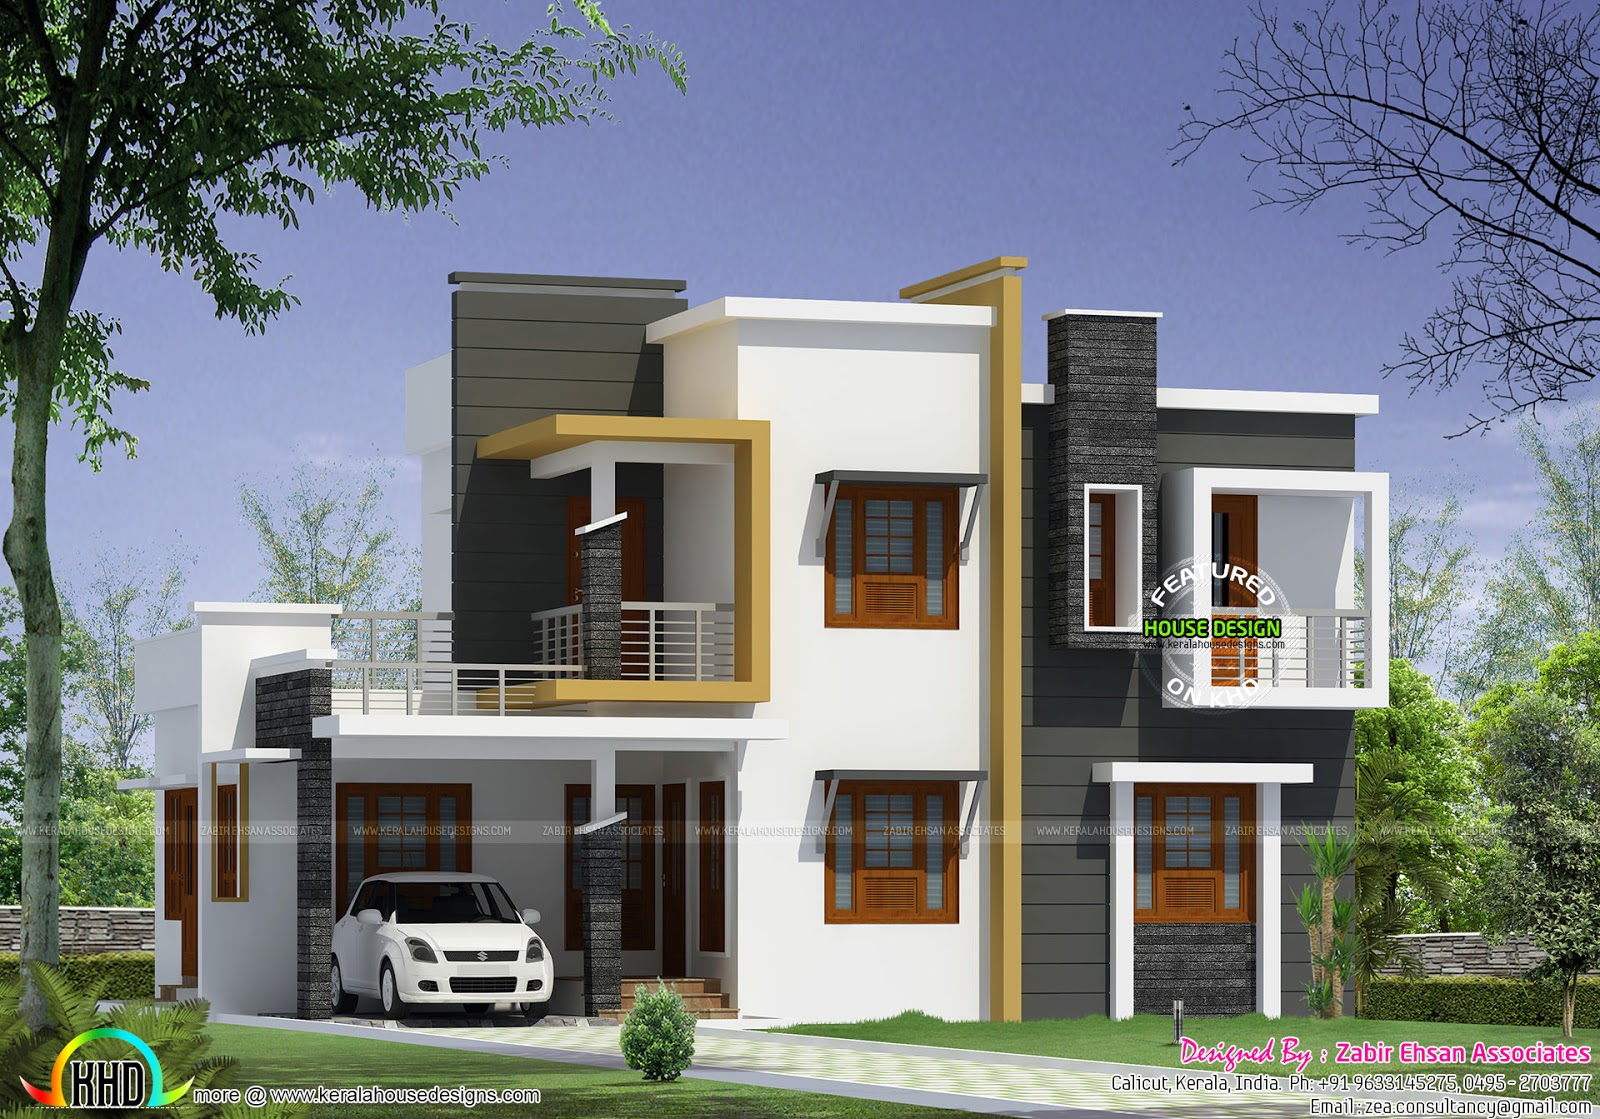 Box type modern house plan kerala home design and floor for New model contemporary house